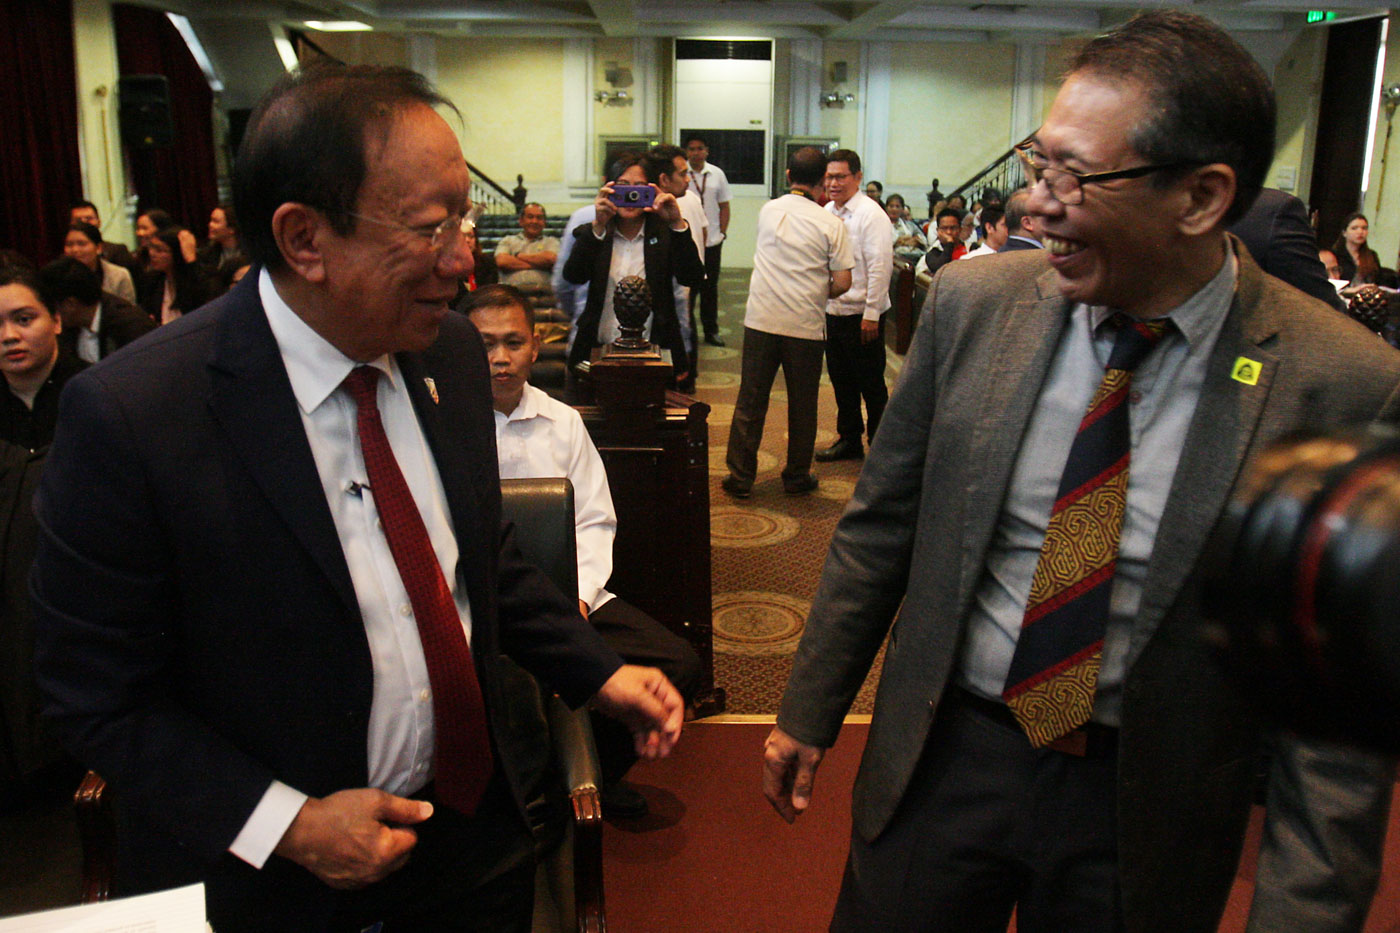 LAWYERS AND THE DRUG WAR. Solicitor General Jose Calida, who will be defending the government, shares a light moment with petitioner and human rights lawyer Dean Jose Manuel u0022Chelu0022 Diokno before the start of the oral arguments on November 21, 2017. Photo by Ben Nabong/Rappler